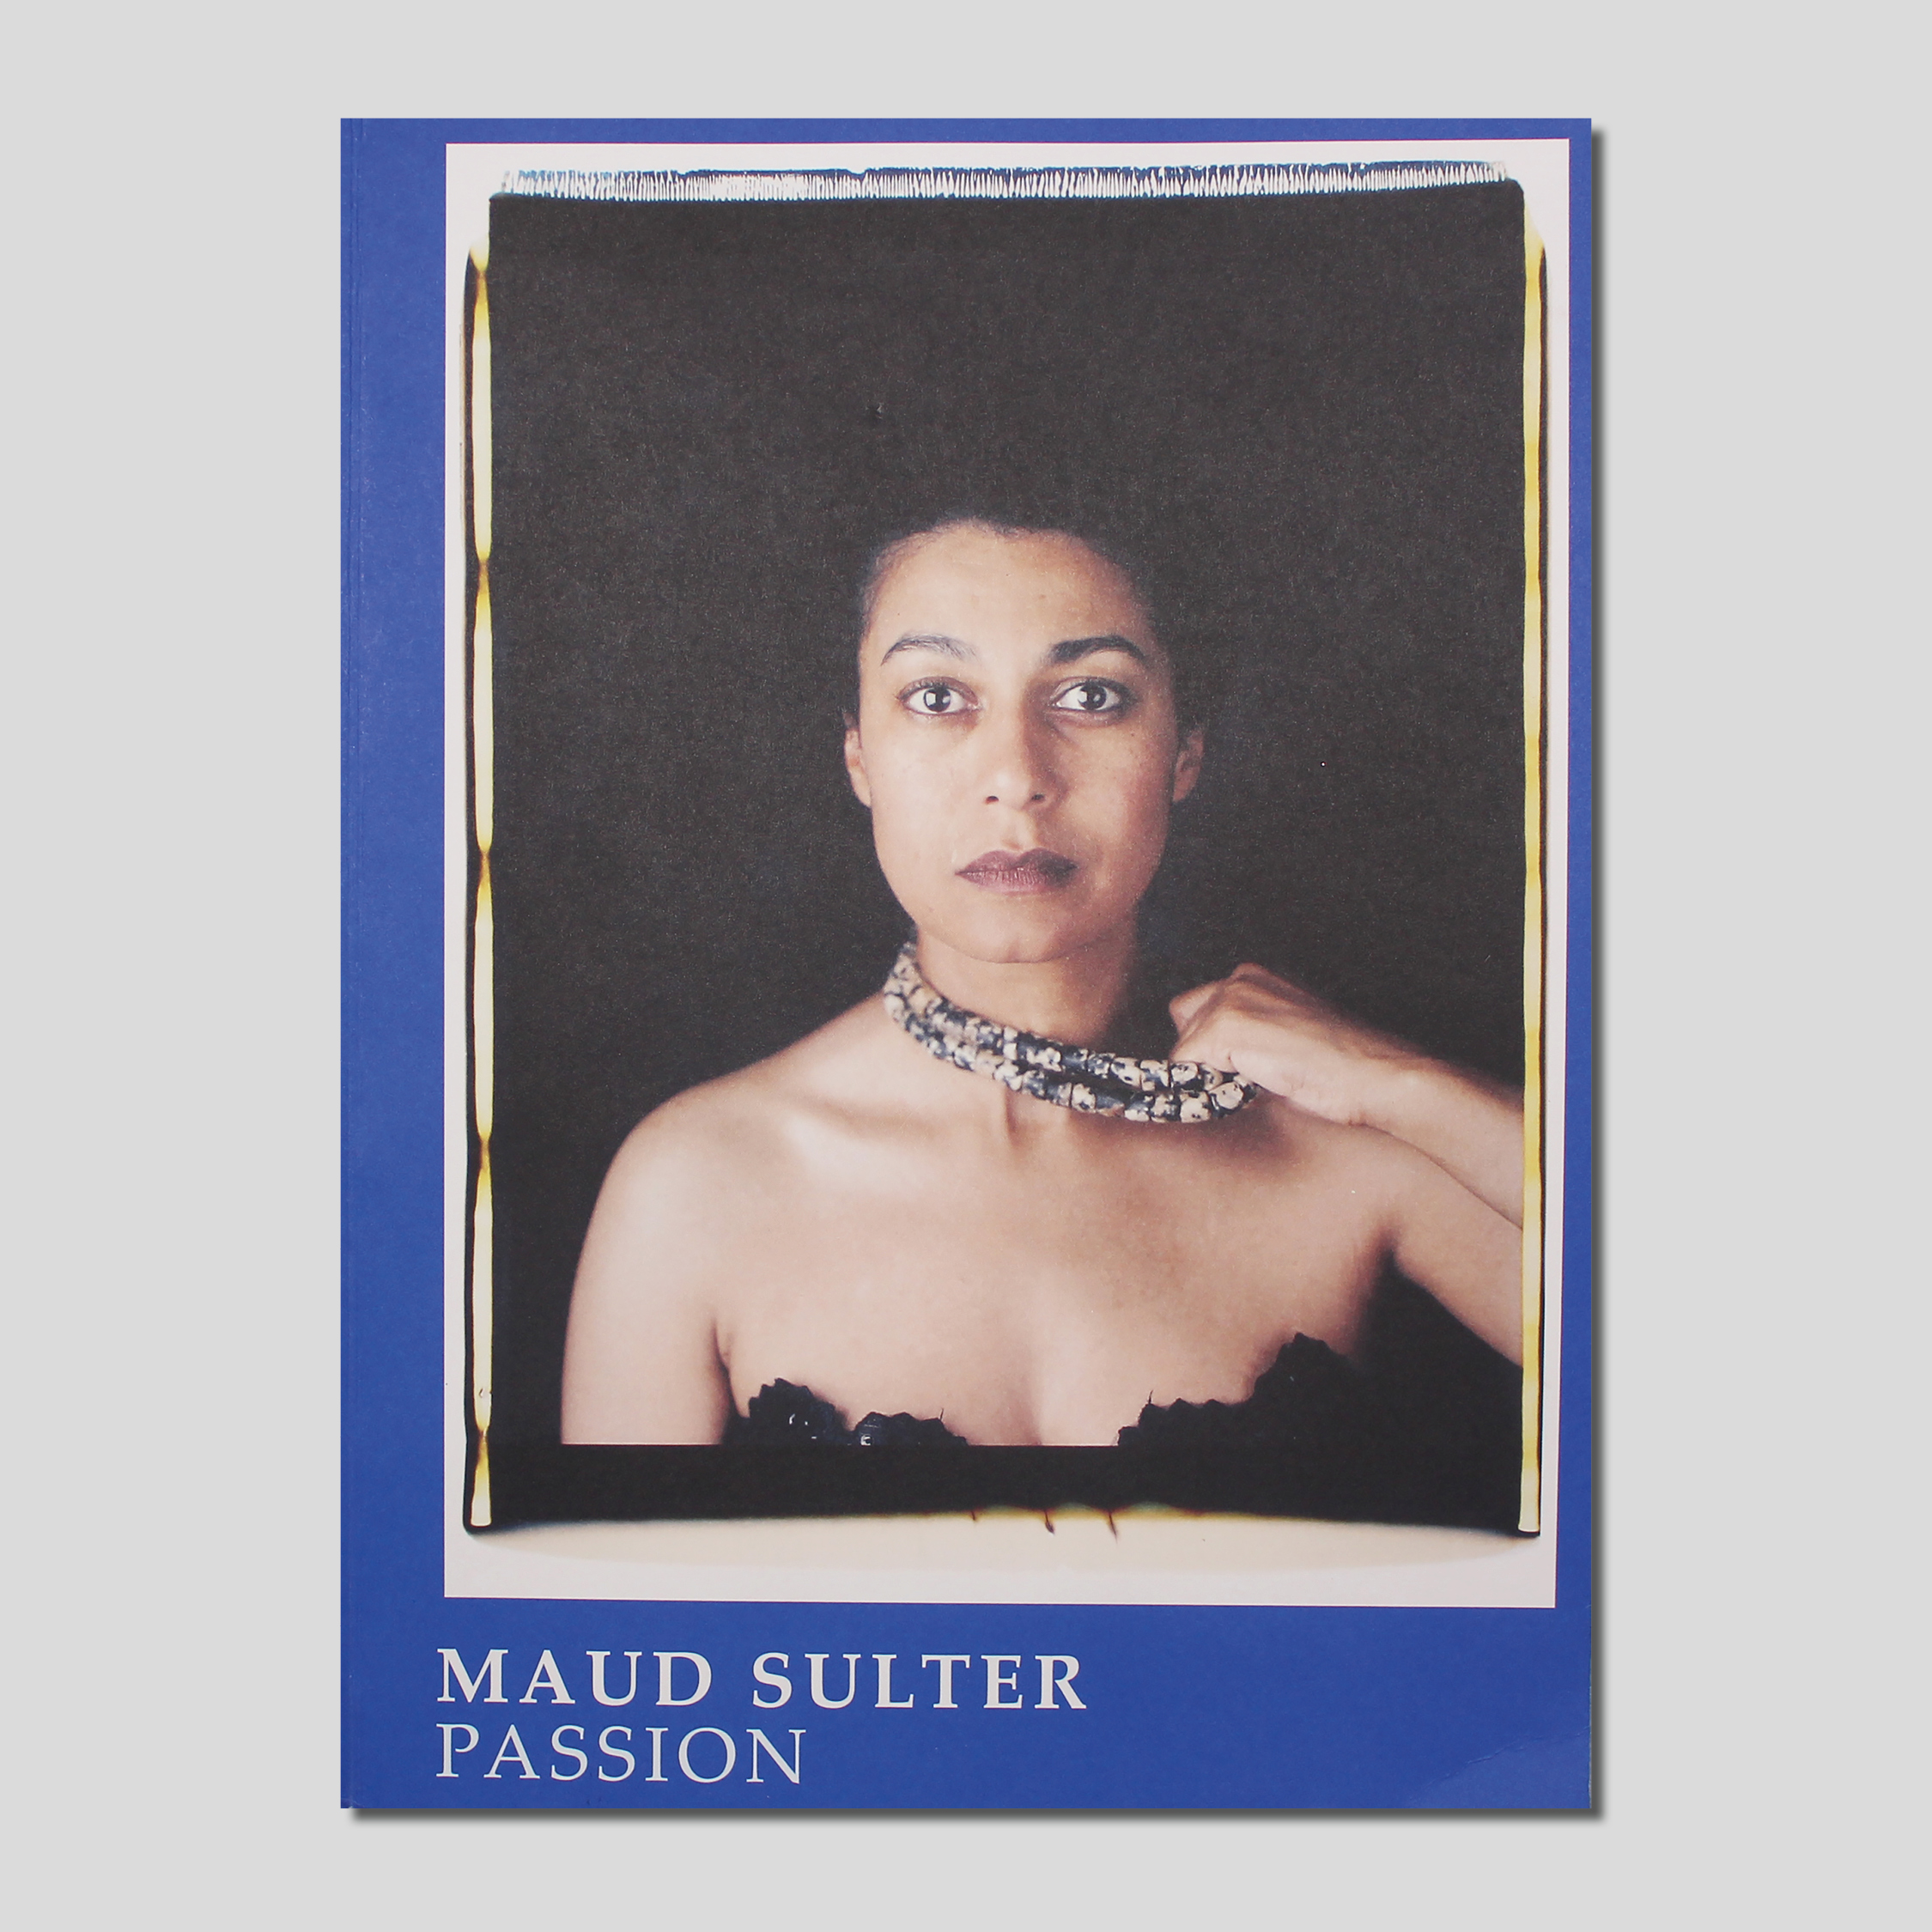 Maud Sulter Passion